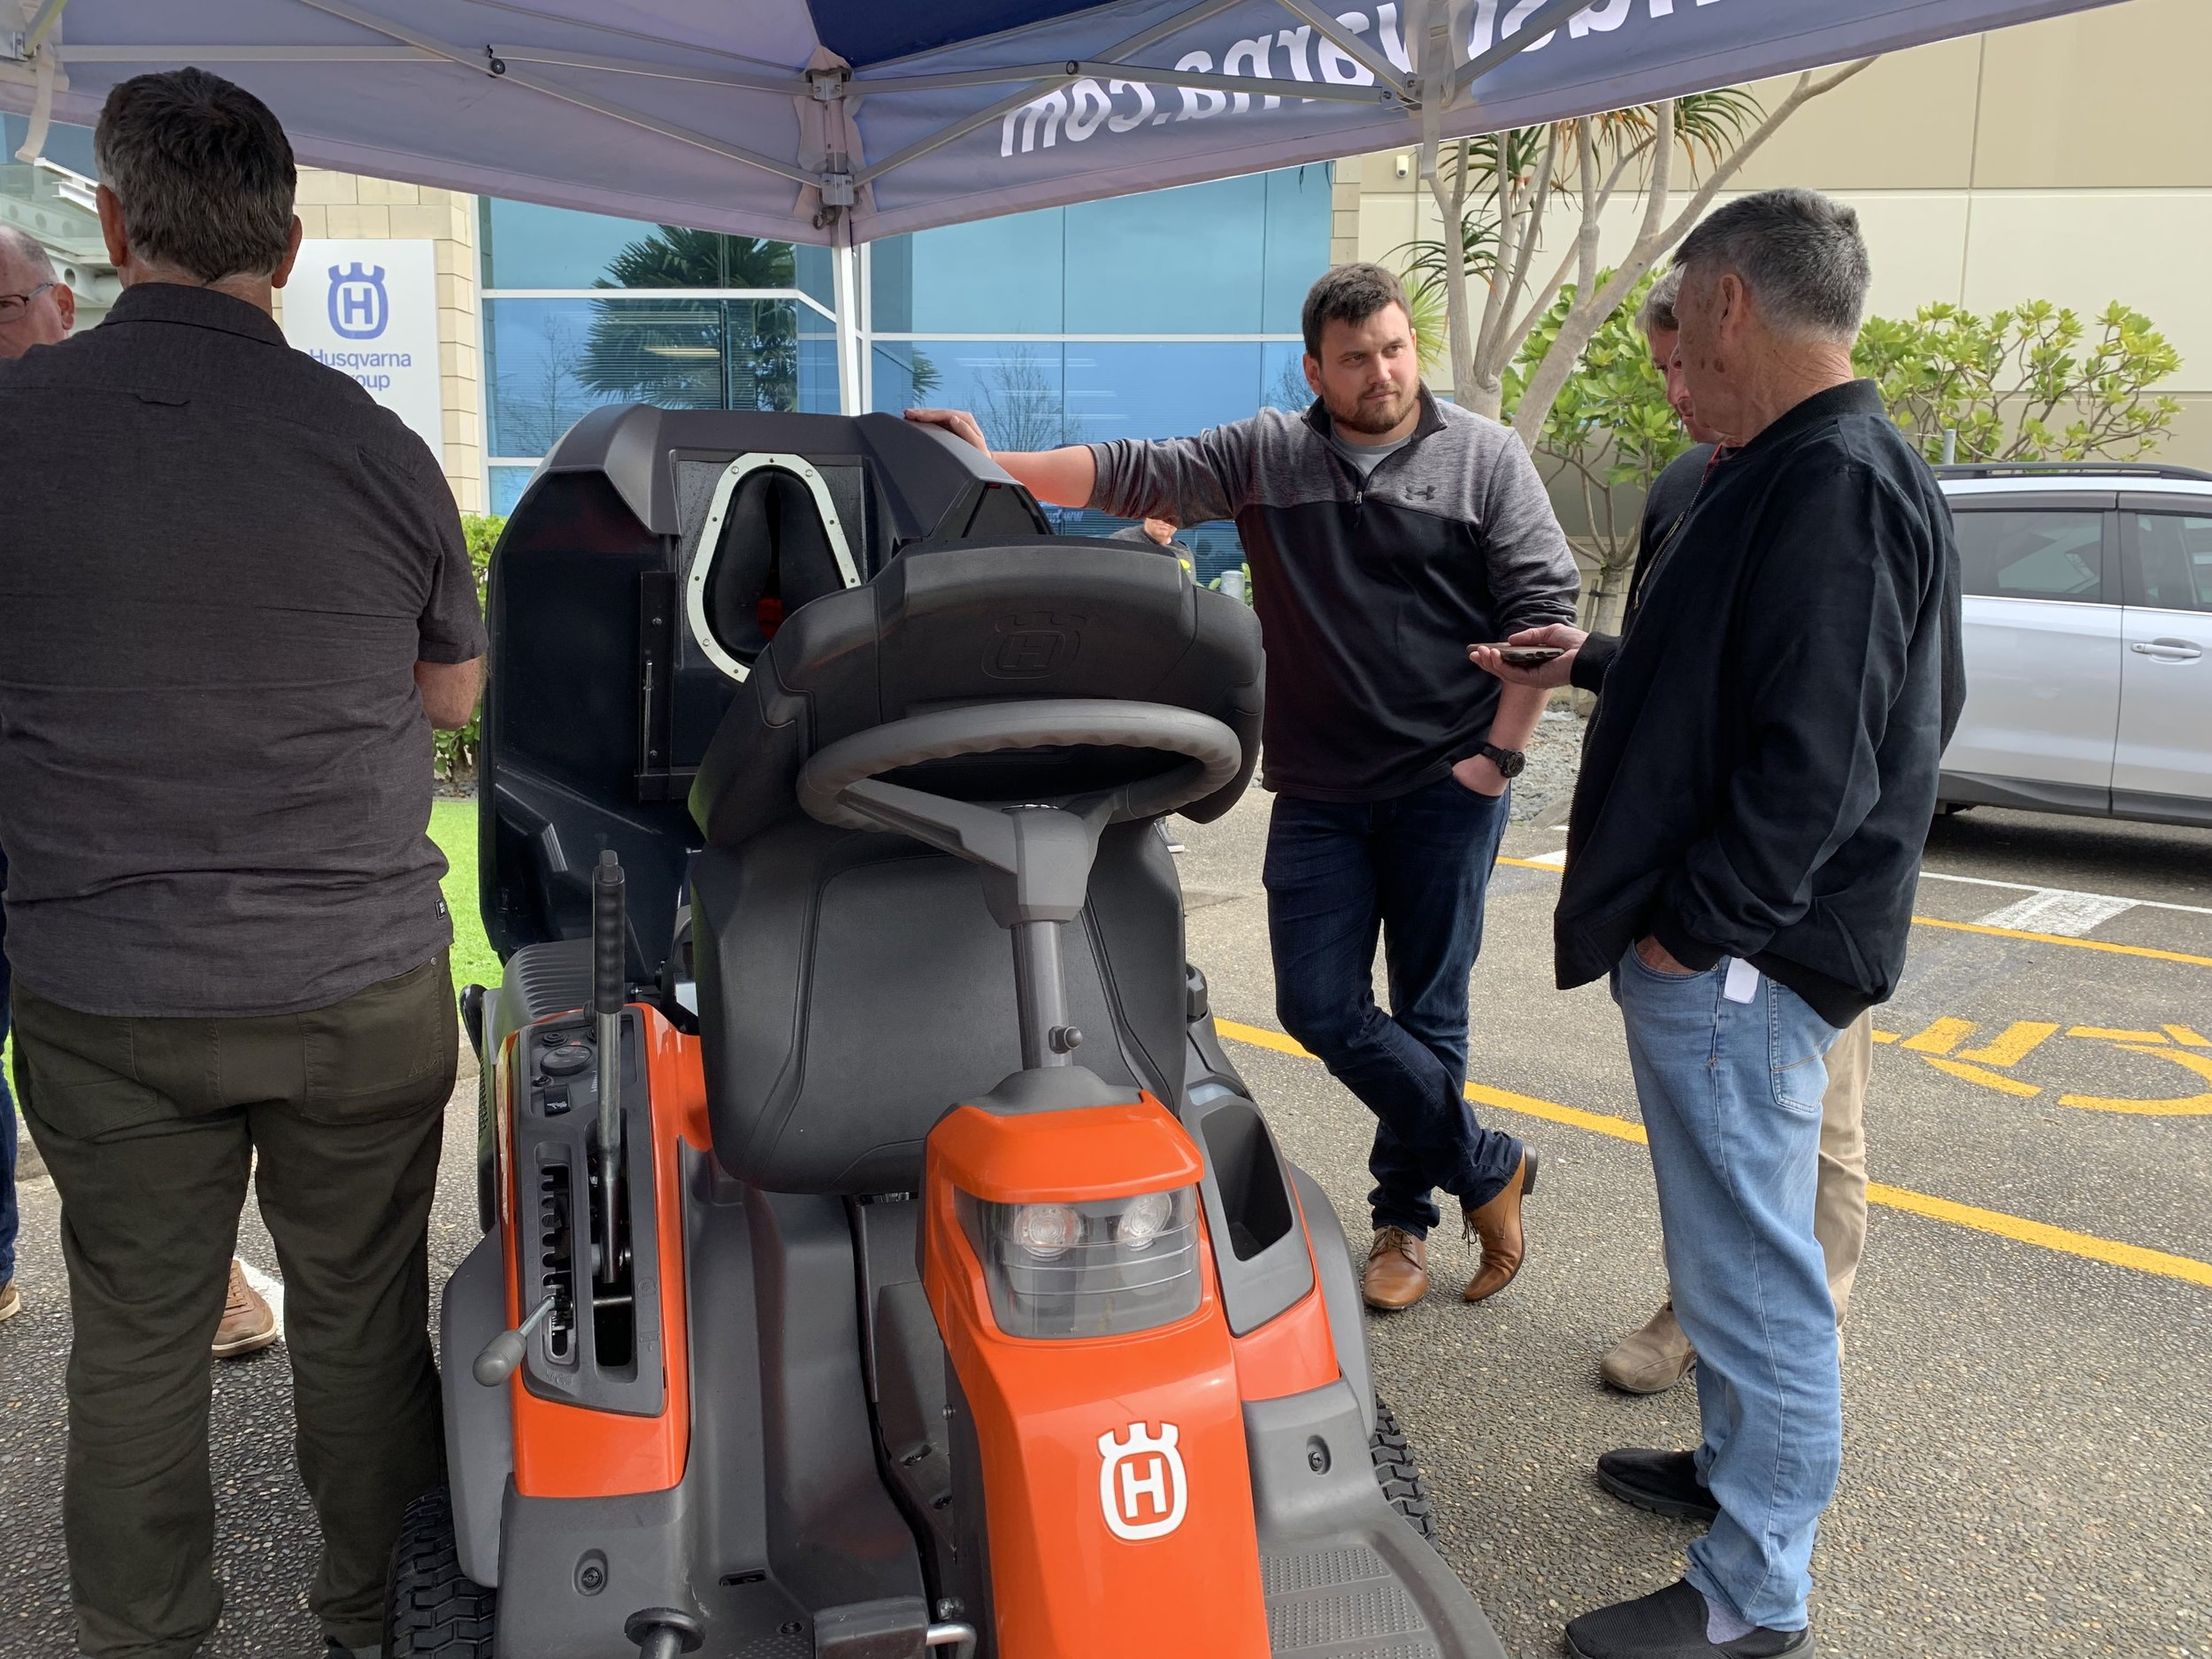 Crewcut regional masters checking out the Husqvarna ride-on mowers